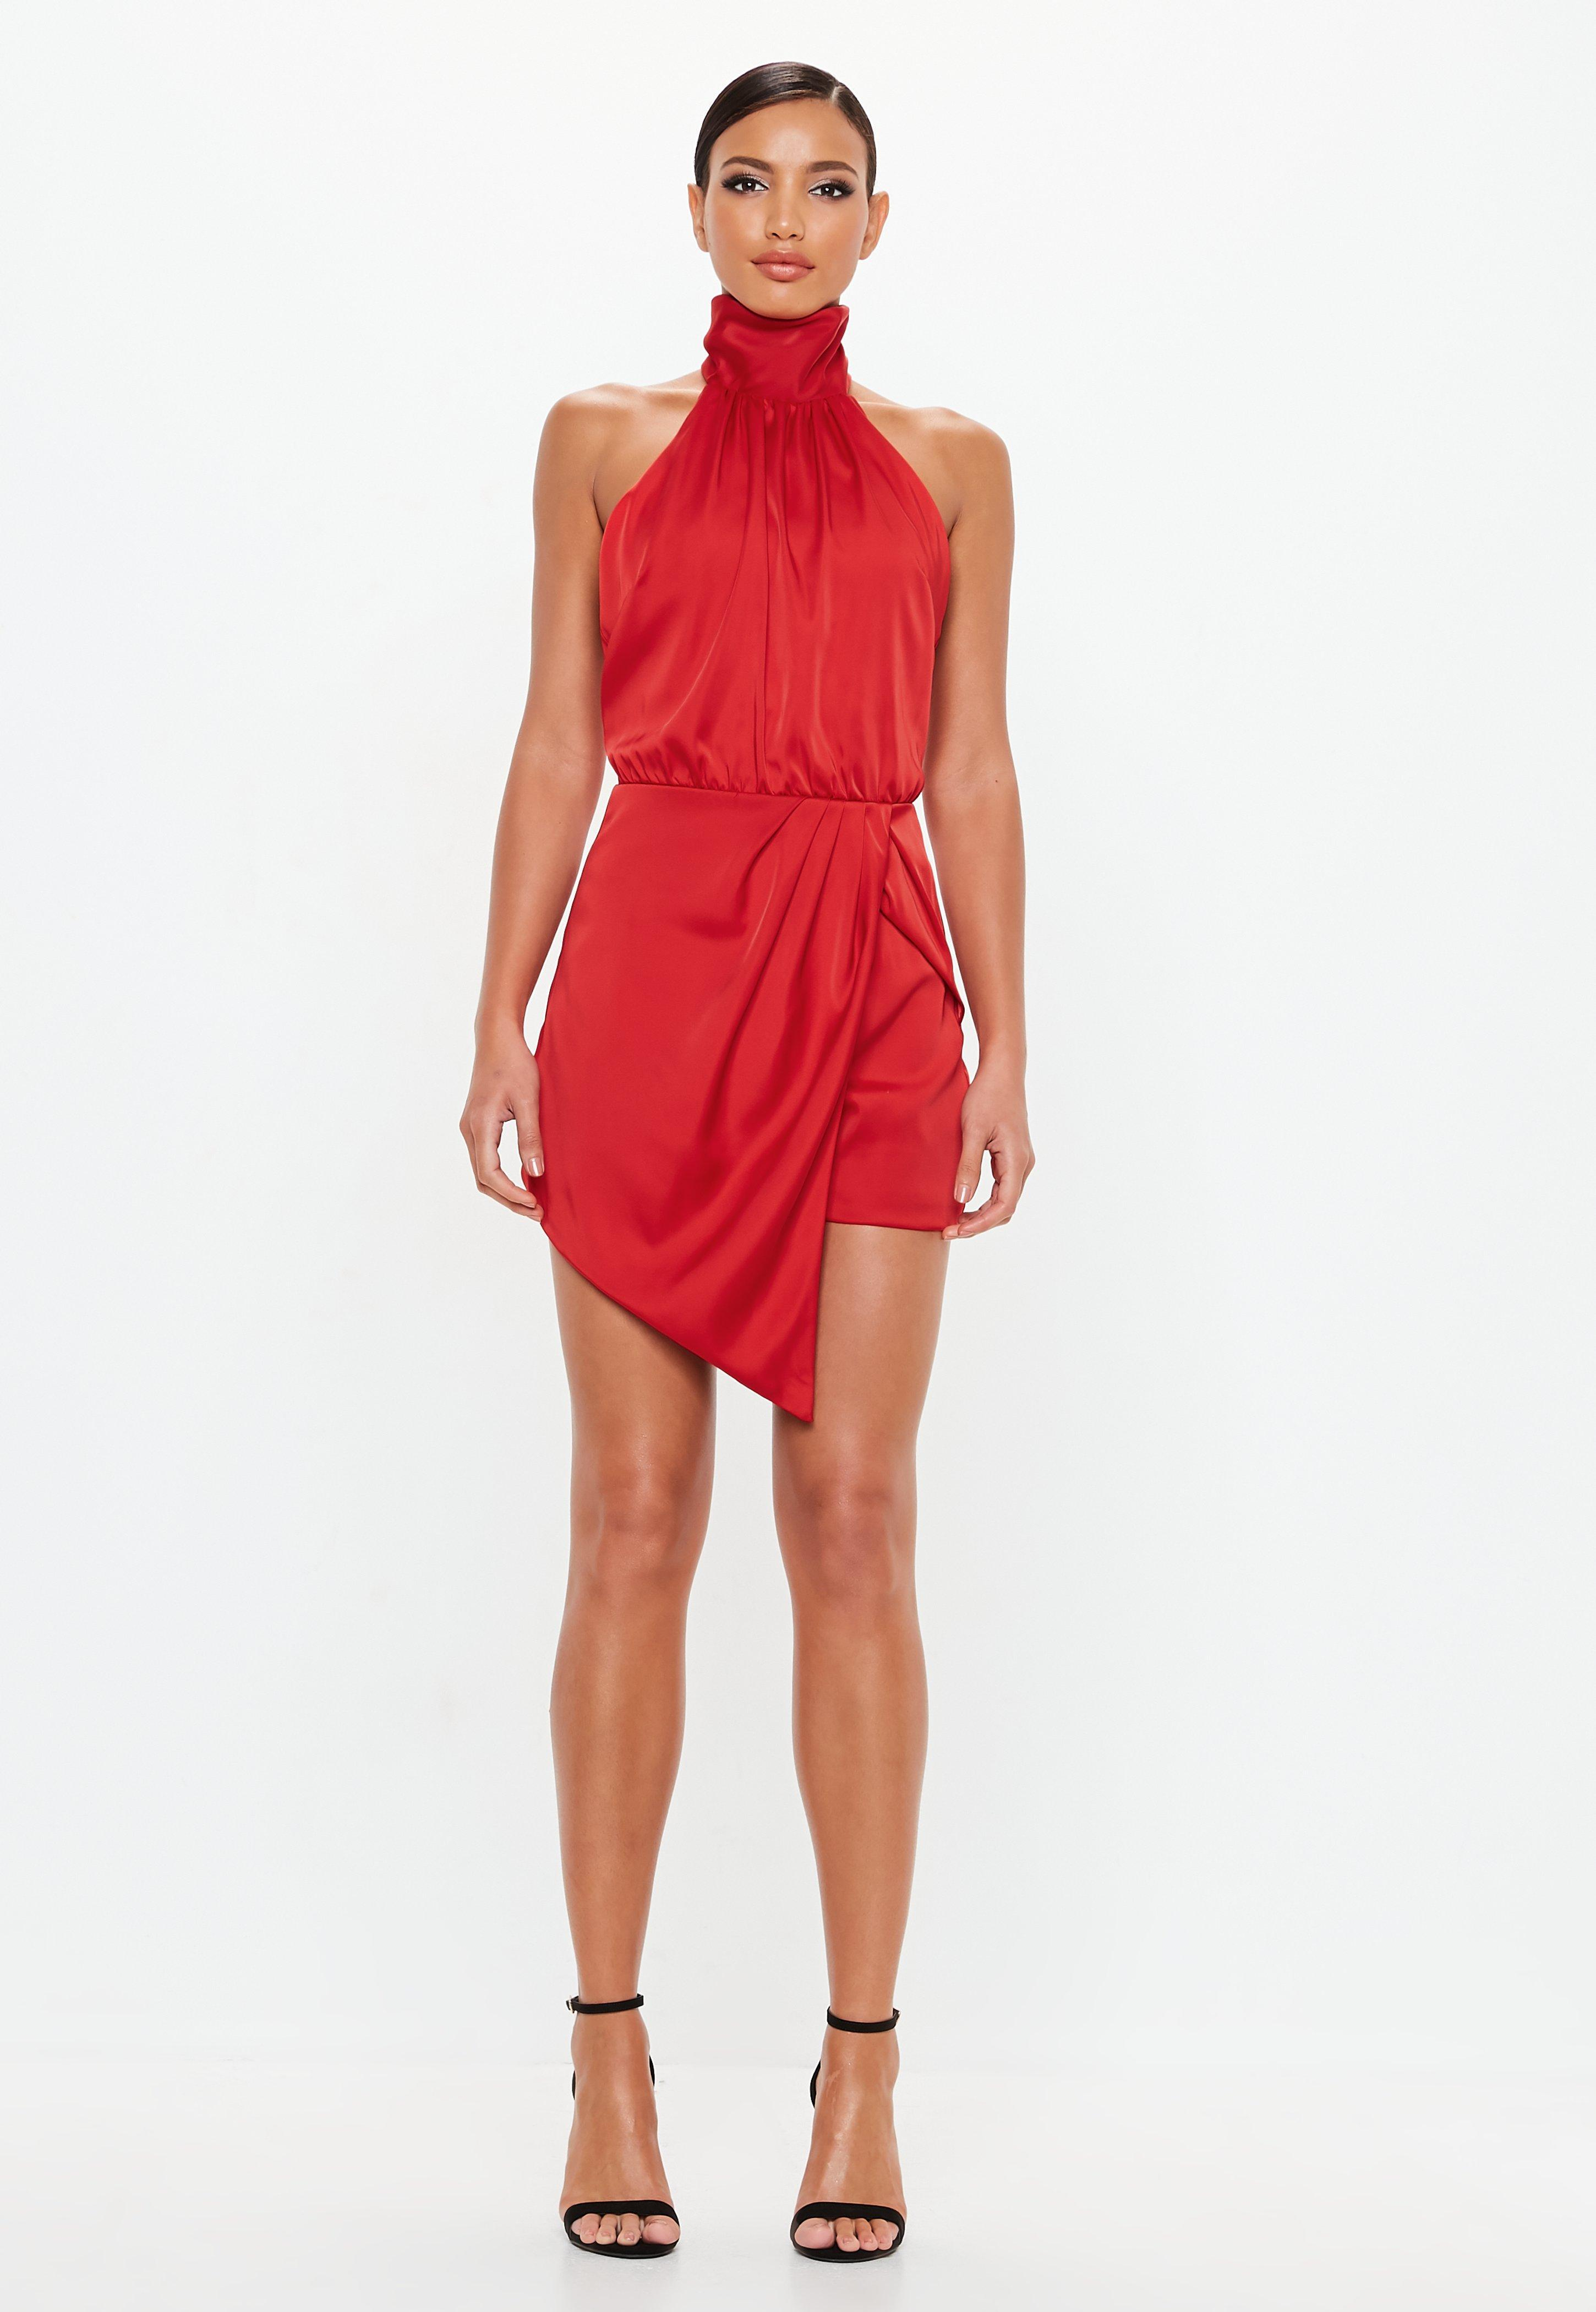 525fa5d83d7 Missguided - Peace + Love Red Wrap Satin Playsuit - Lyst. View fullscreen